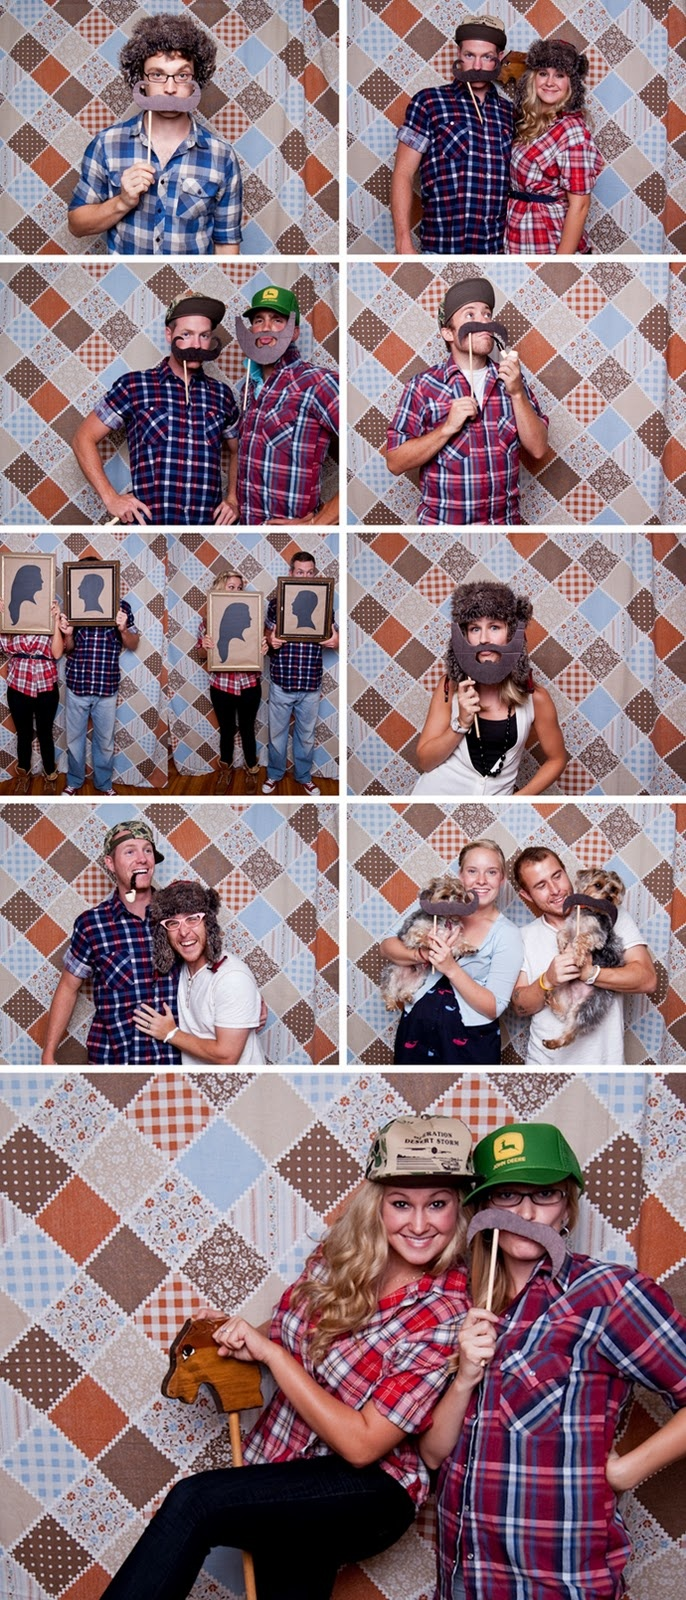 Photo props for Lumberjack/Moose Party It would make for some really funny photos!